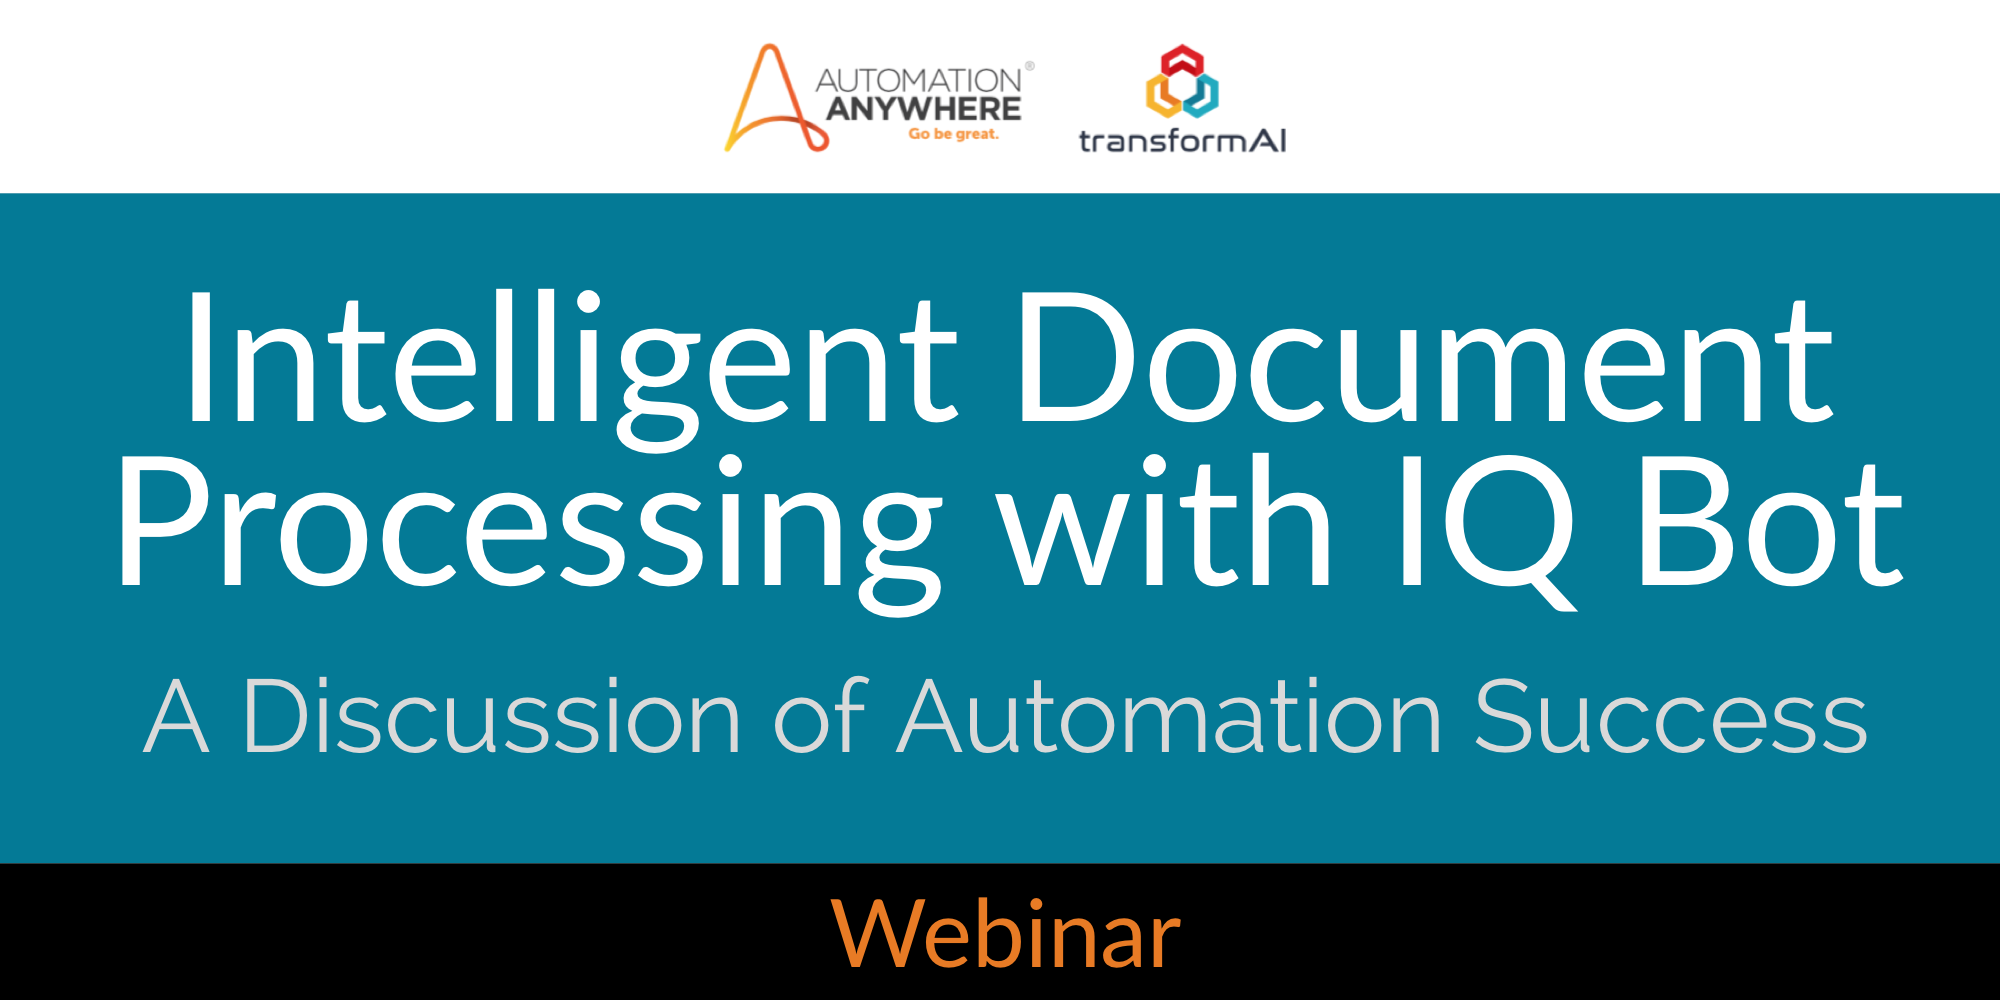 Webinar Recording: Intelligent Document Processing & IQ Bot